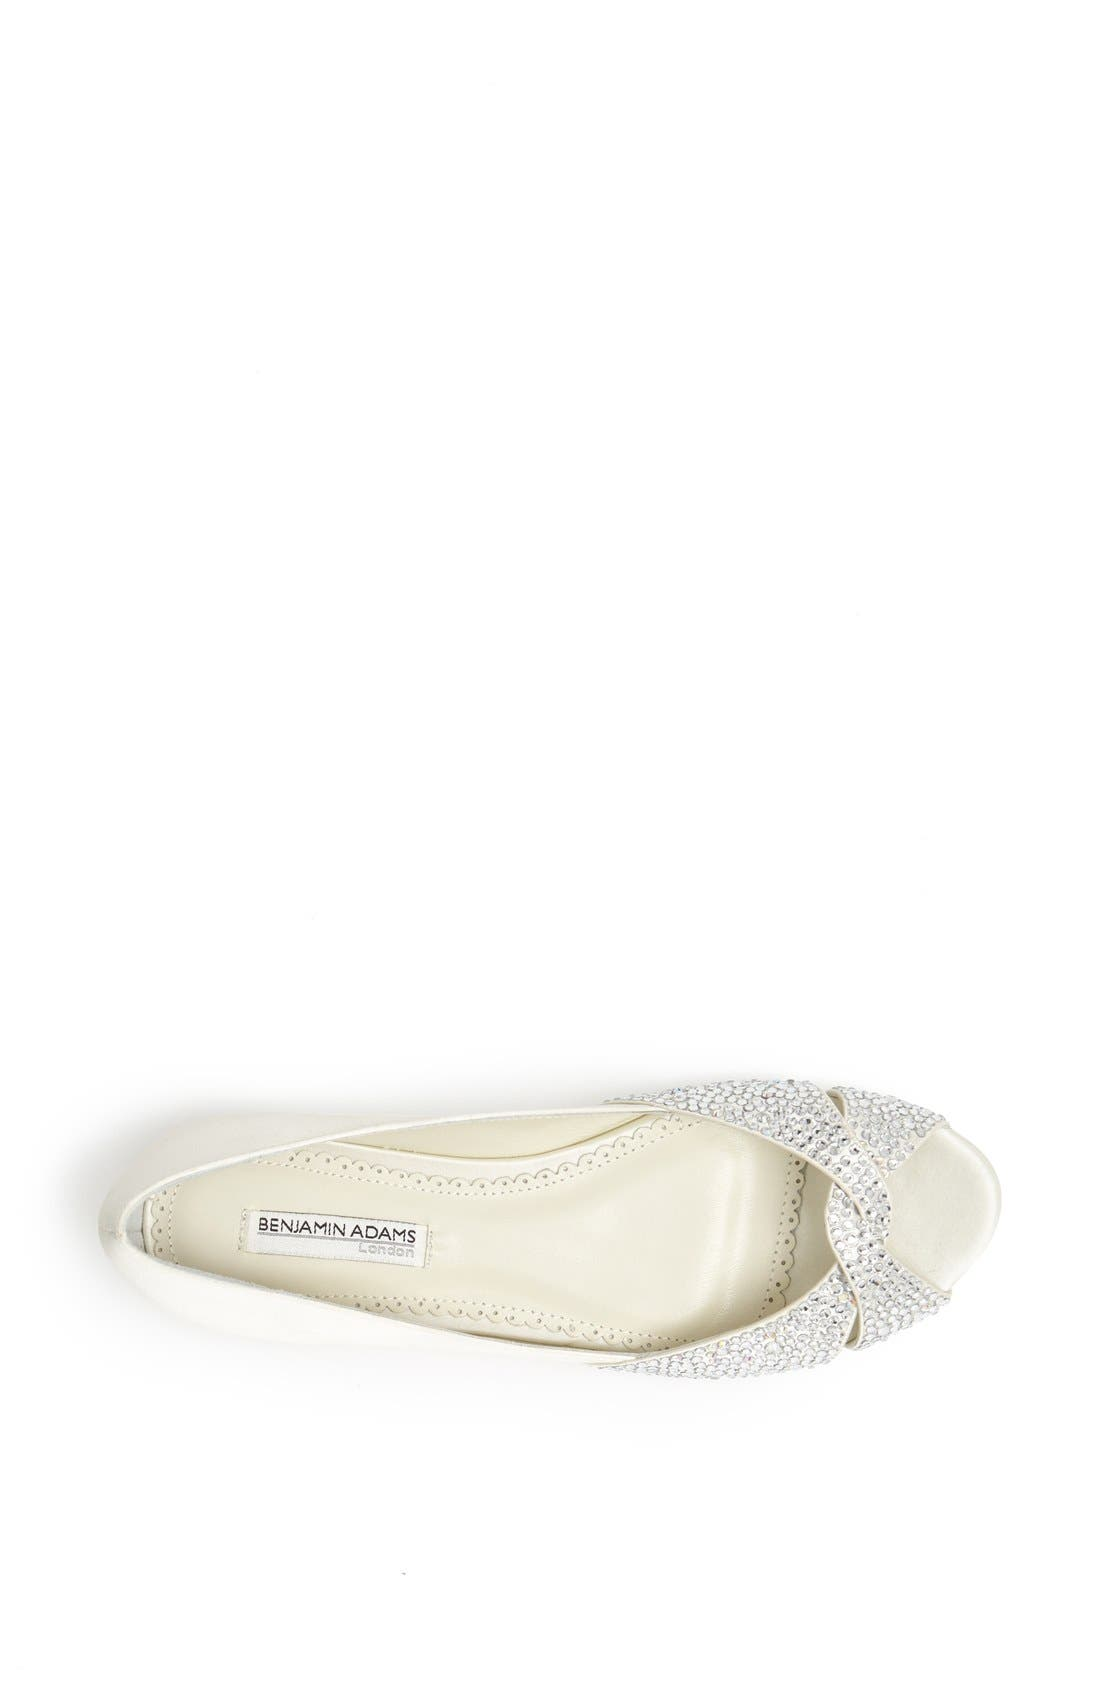 Alternate Image 3  - Benjamin Adams London 'Andie' Crystal Embellished Peep Toe Flat